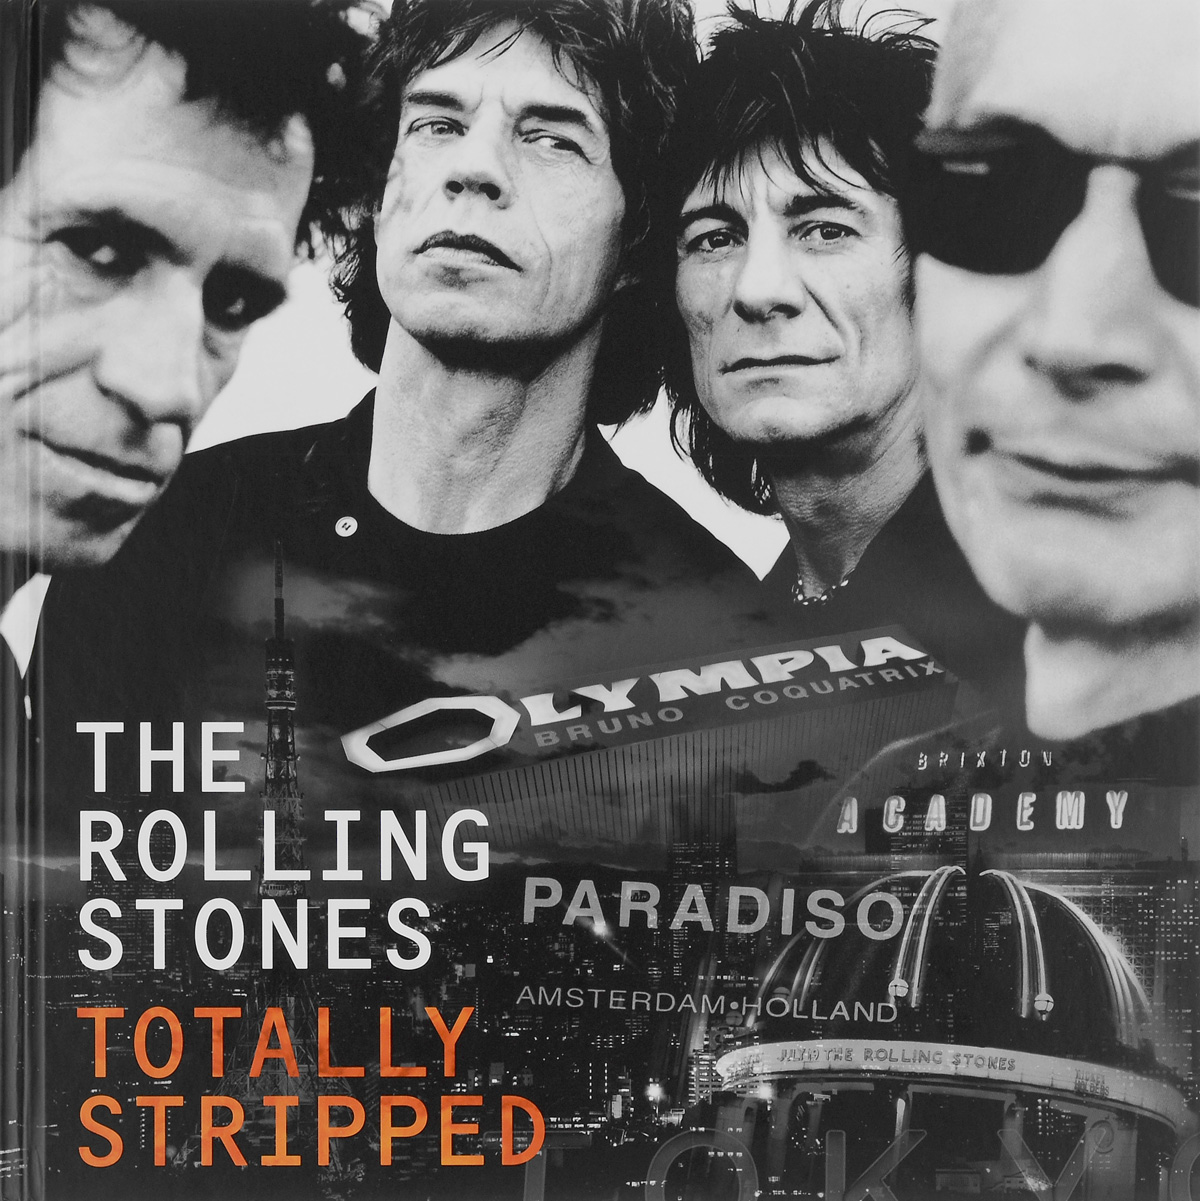 The Rolling Stones The Rolling Stones. The Totally Stripped. Deluxe Edition (CD + 4 DVD) pantera pantera reinventing hell the best of pantera cd dvd